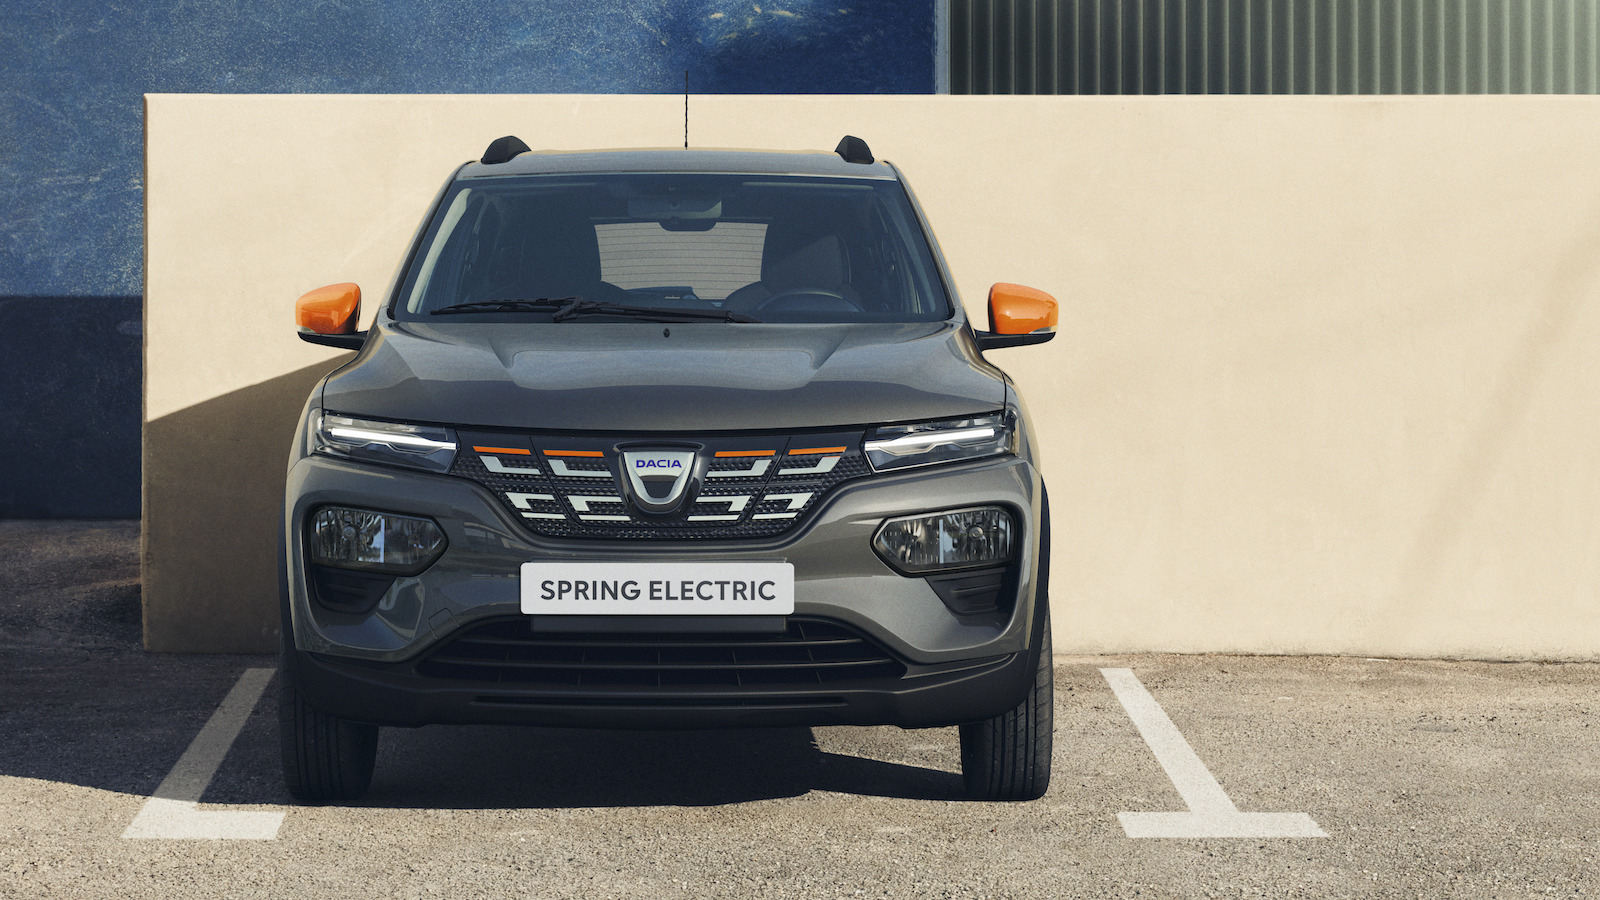 Spring Electric Car